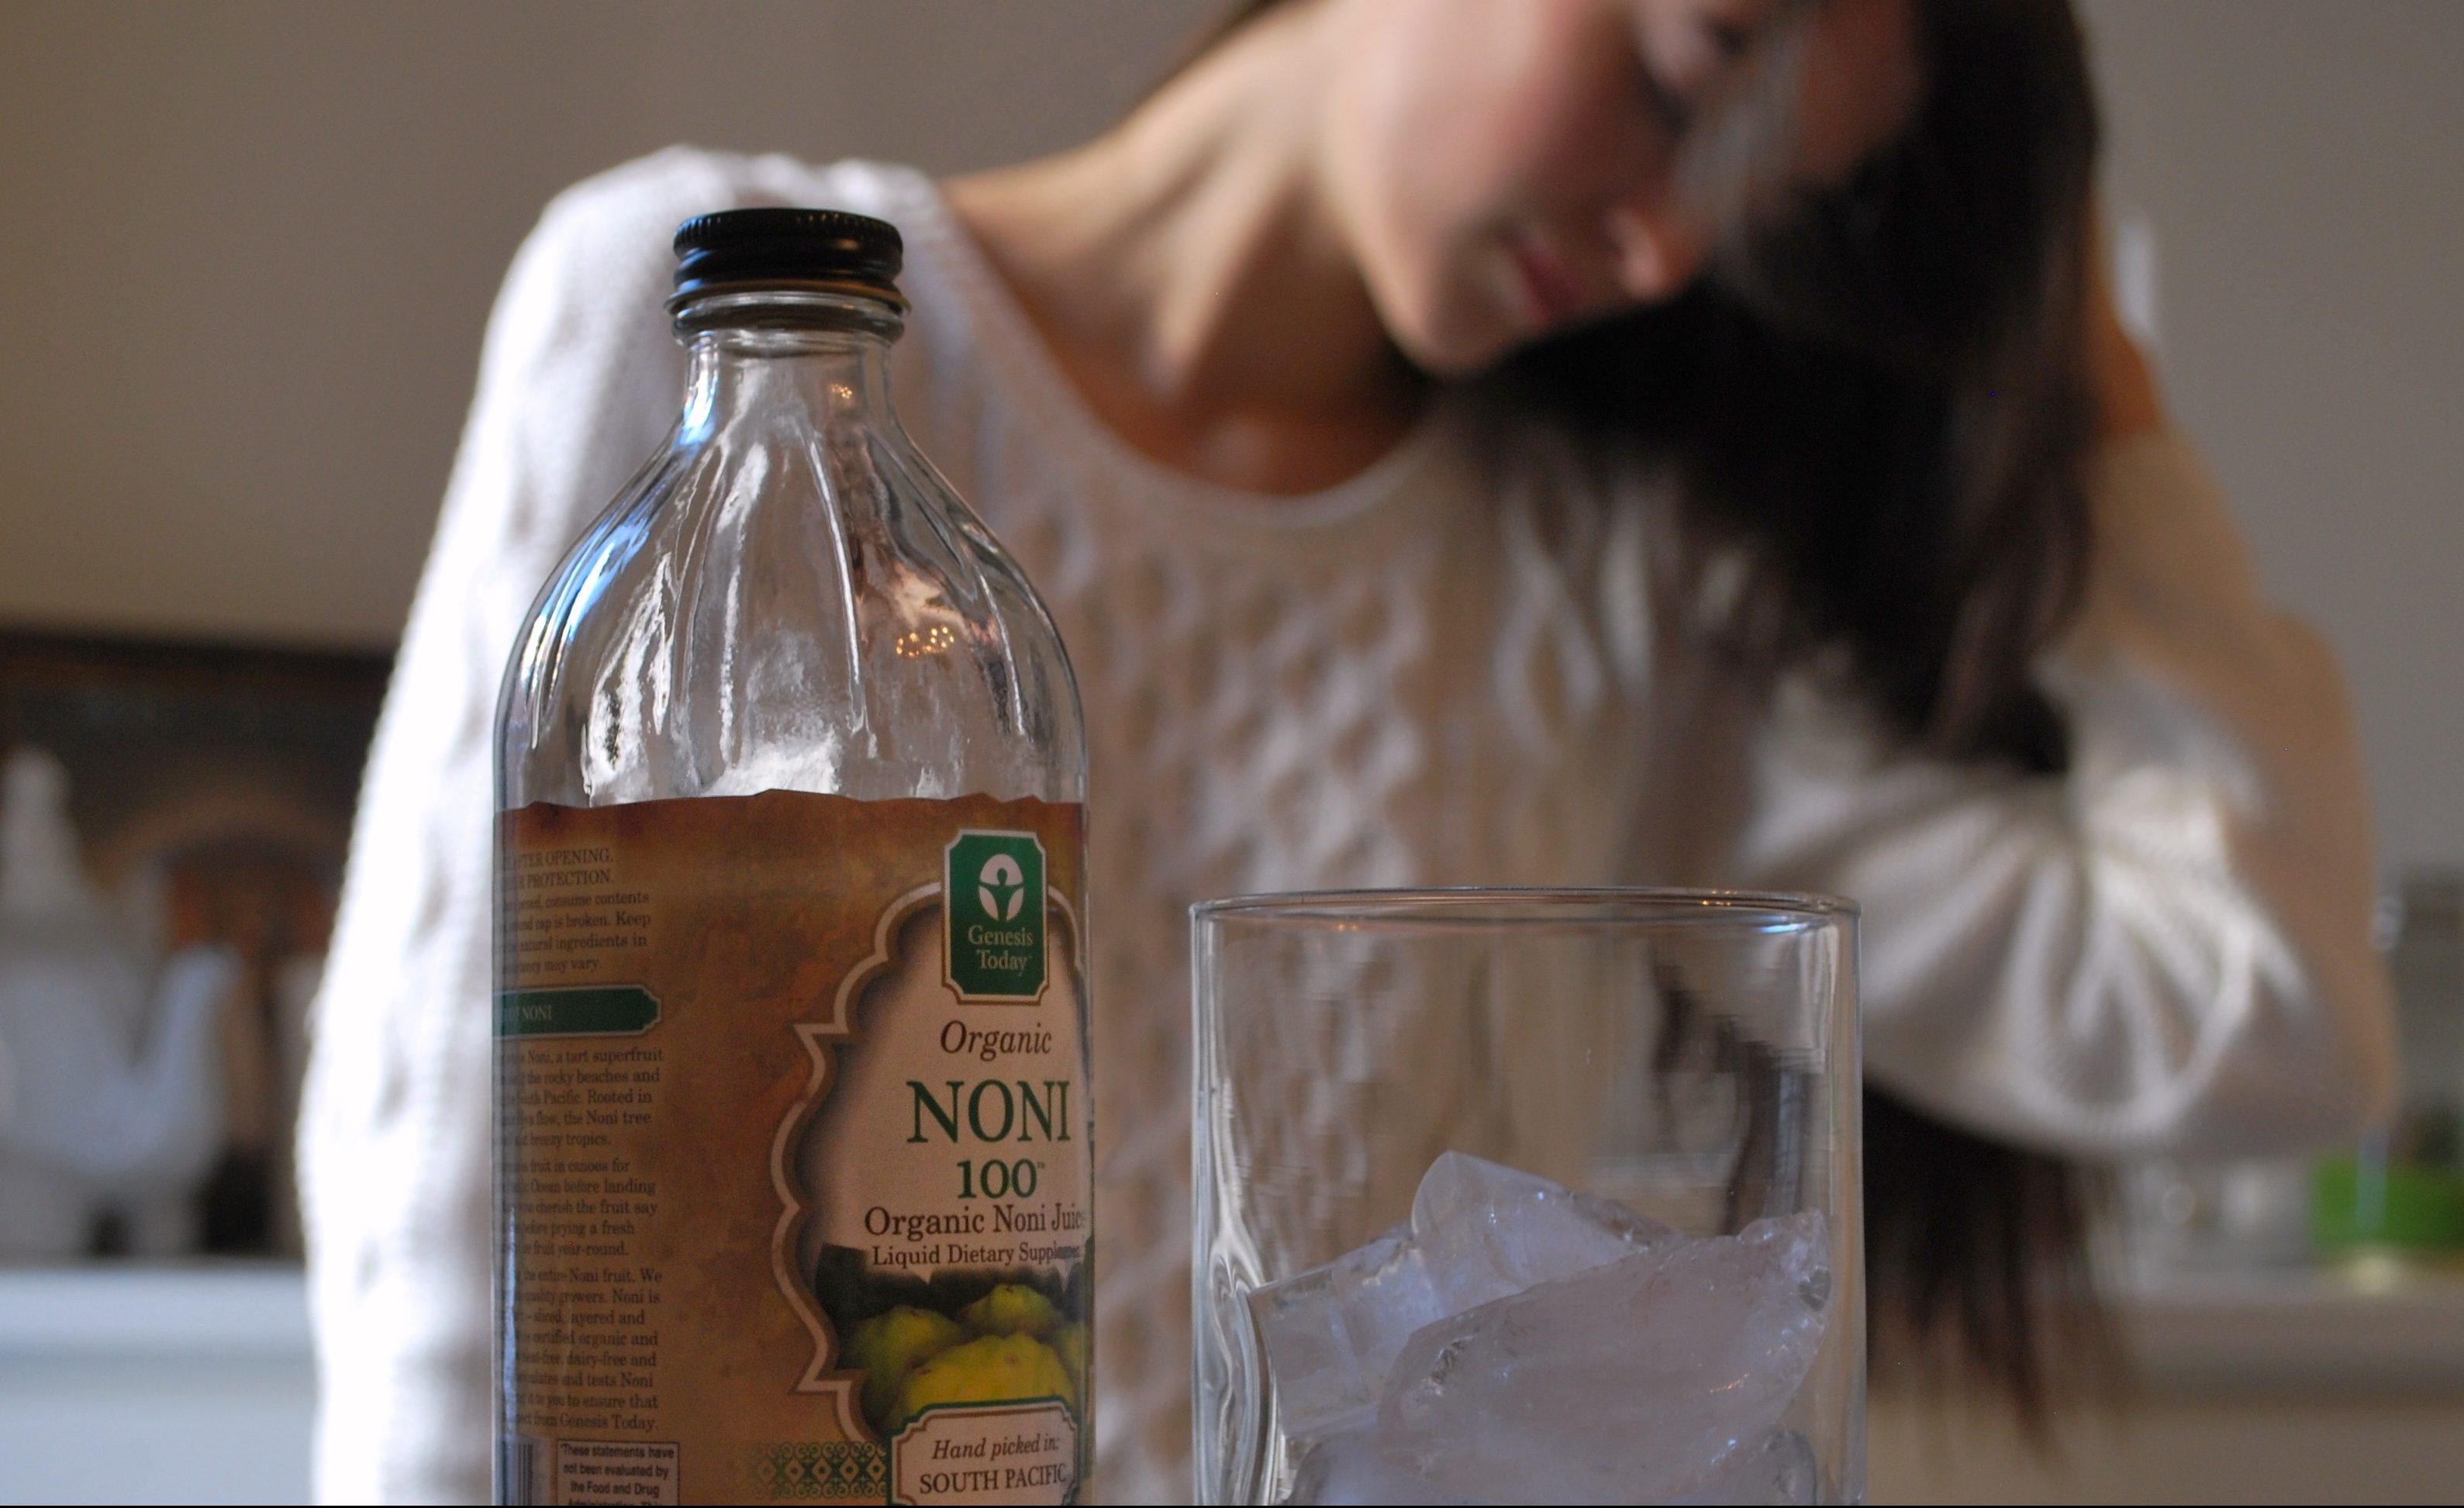 The Glow Juice: Genesis Today's Organic Noni